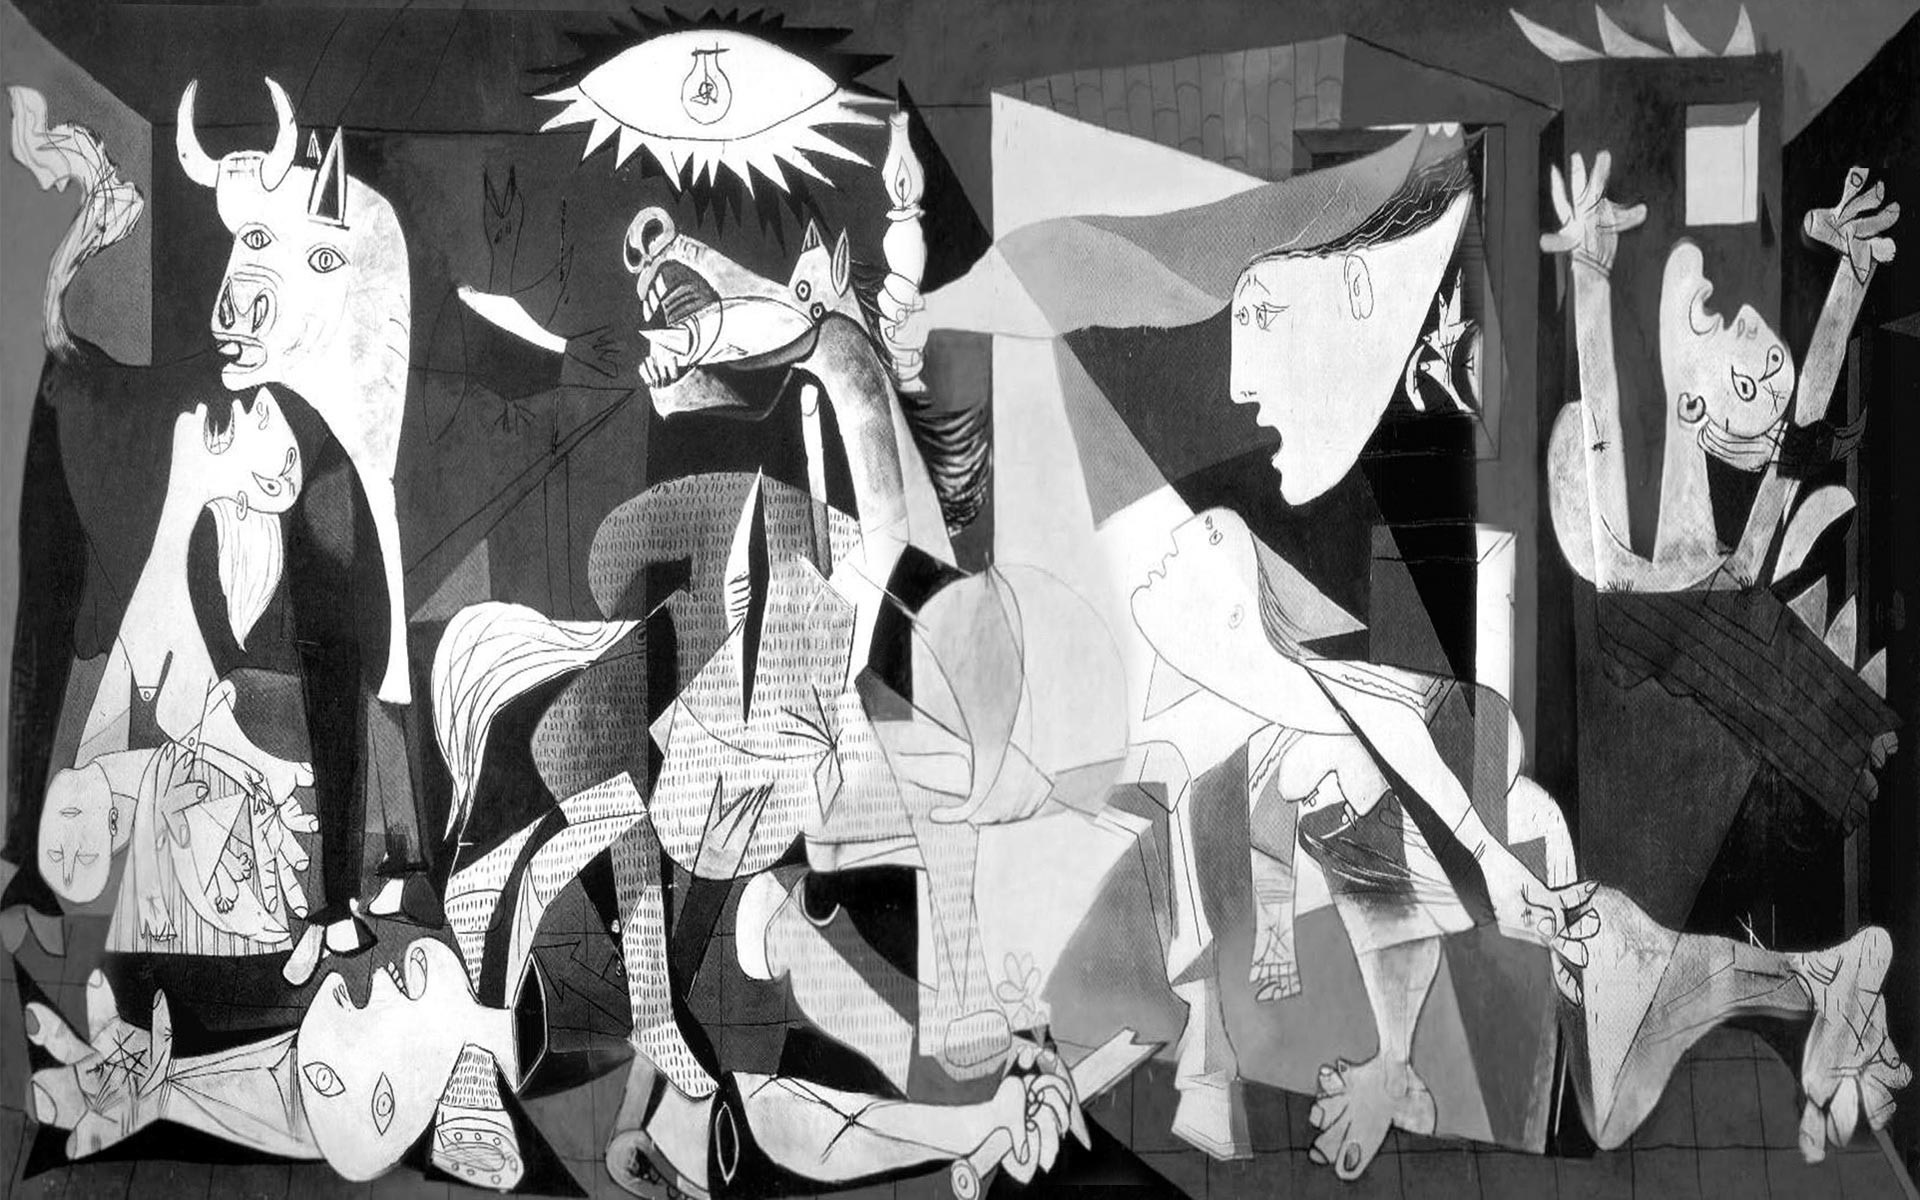 Guernica Painting by Pablo Picasso - High Resolution